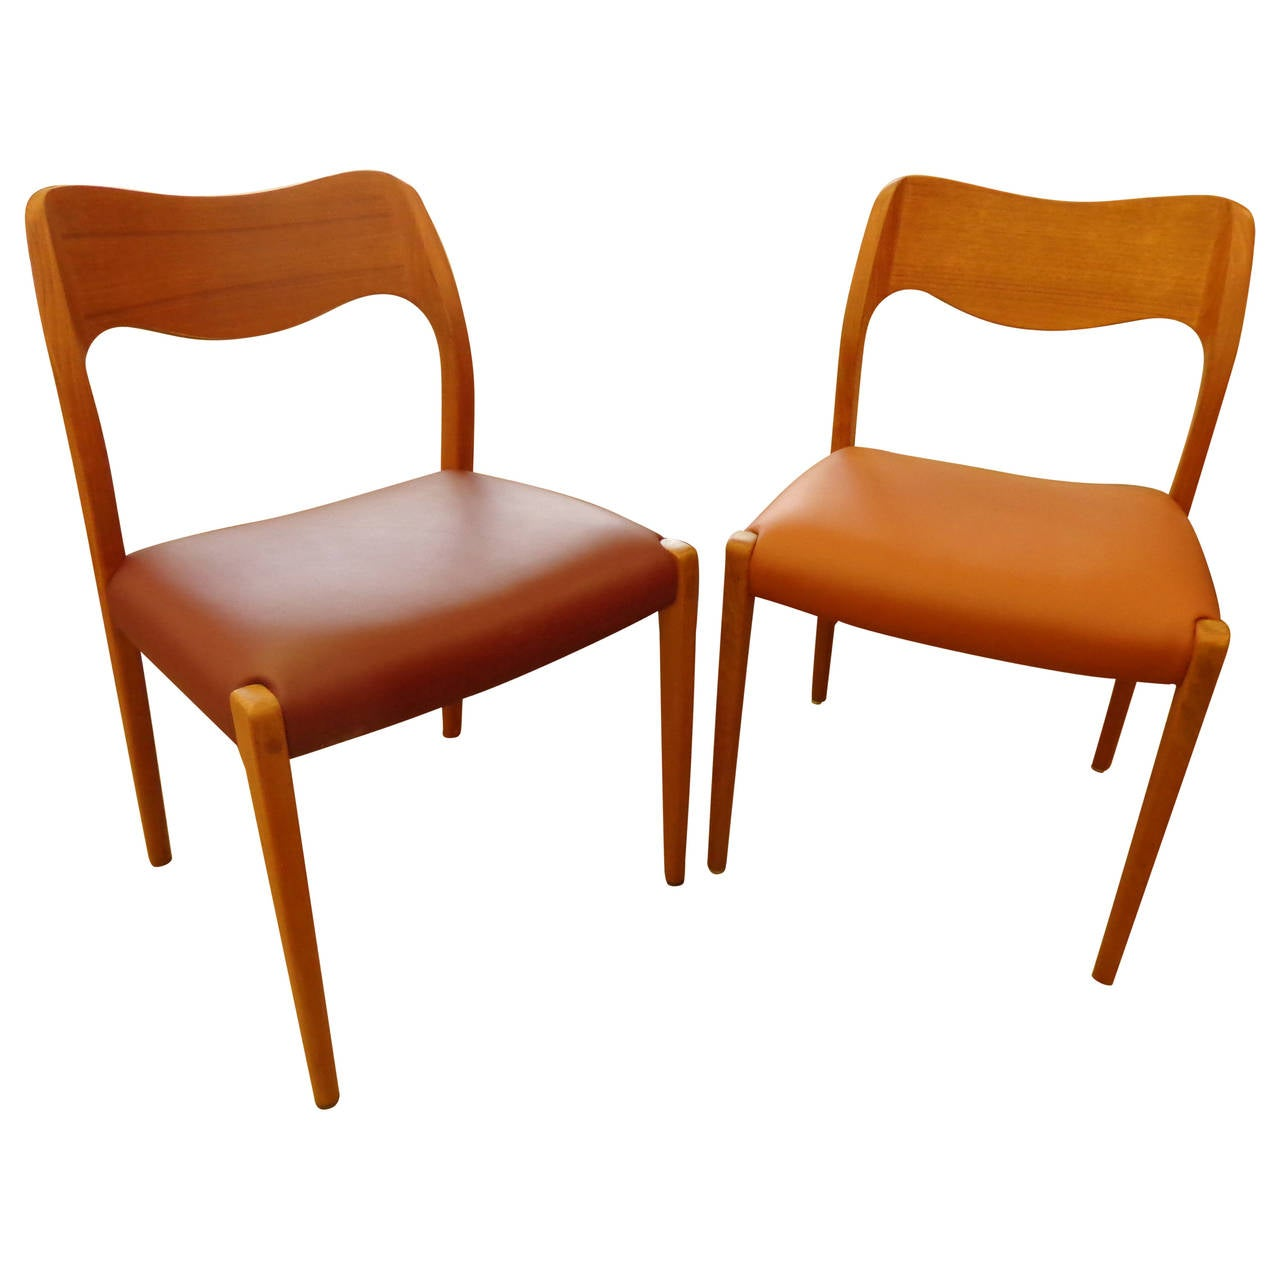 Niels O Moller 11 Model 71 Teak Dining Chairs With Leather For Sale At 1stdibs